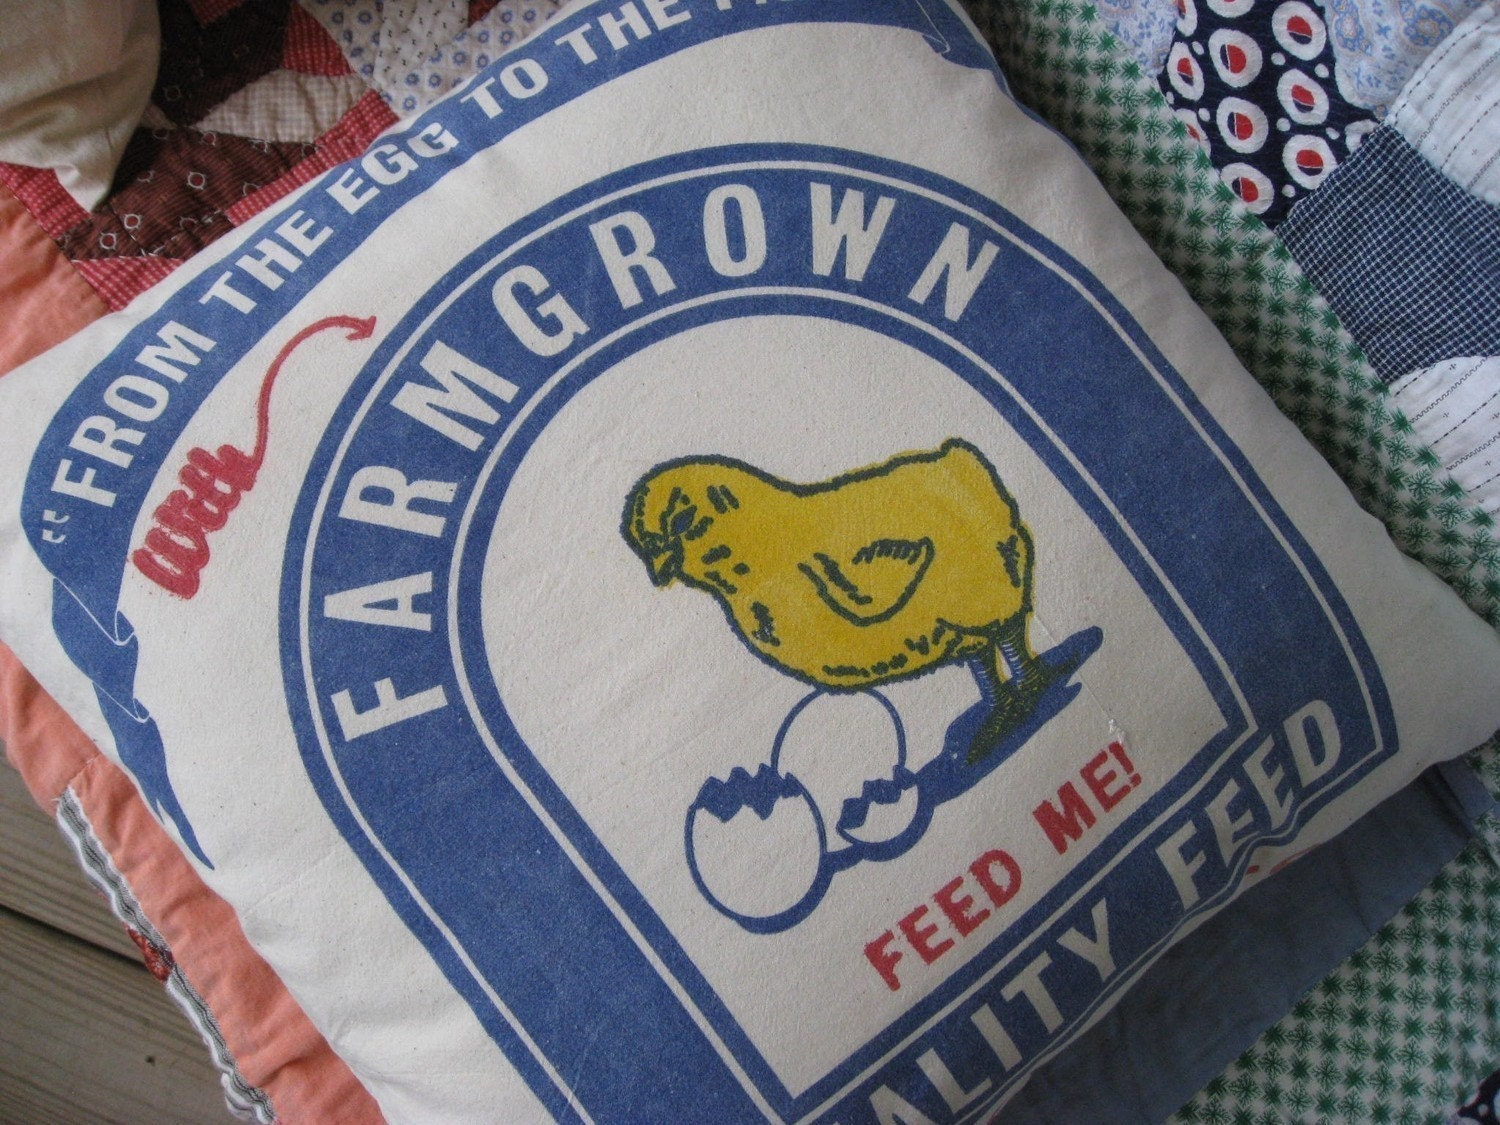 ON SALE - Chicken Feed Pillow  - Feed Me with Farm Grown Quality Food - Cute Yellow Chick - Grain Sack Pillow